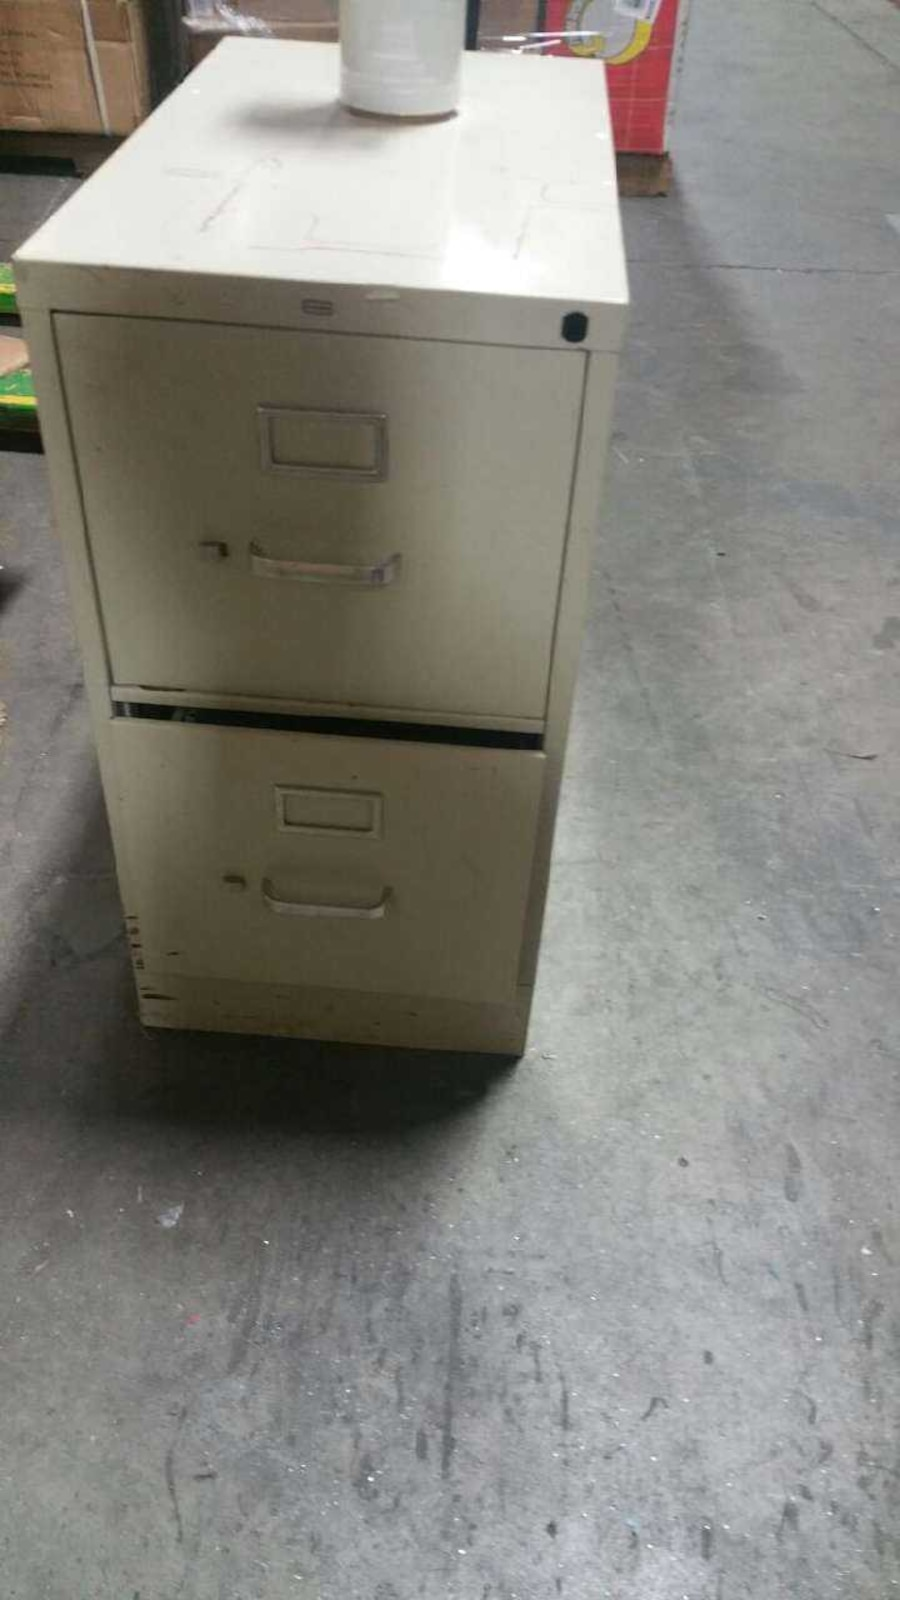 Used 2 filing cabinets in lawrenceville for Kitchen cabinets jimmy carter blvd